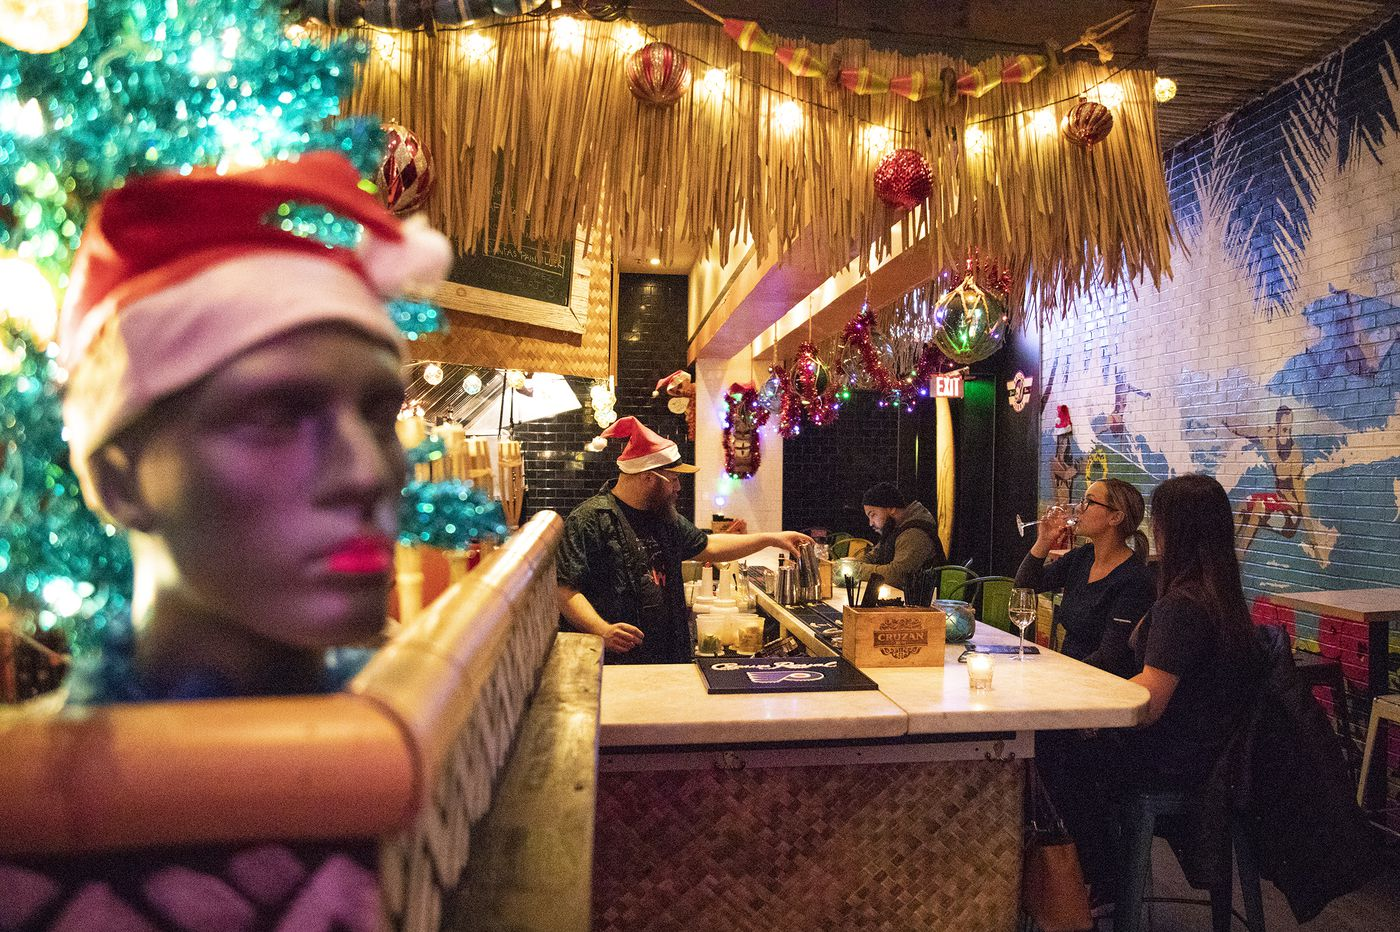 15 Philly bars and restaurants decked out for the holidays